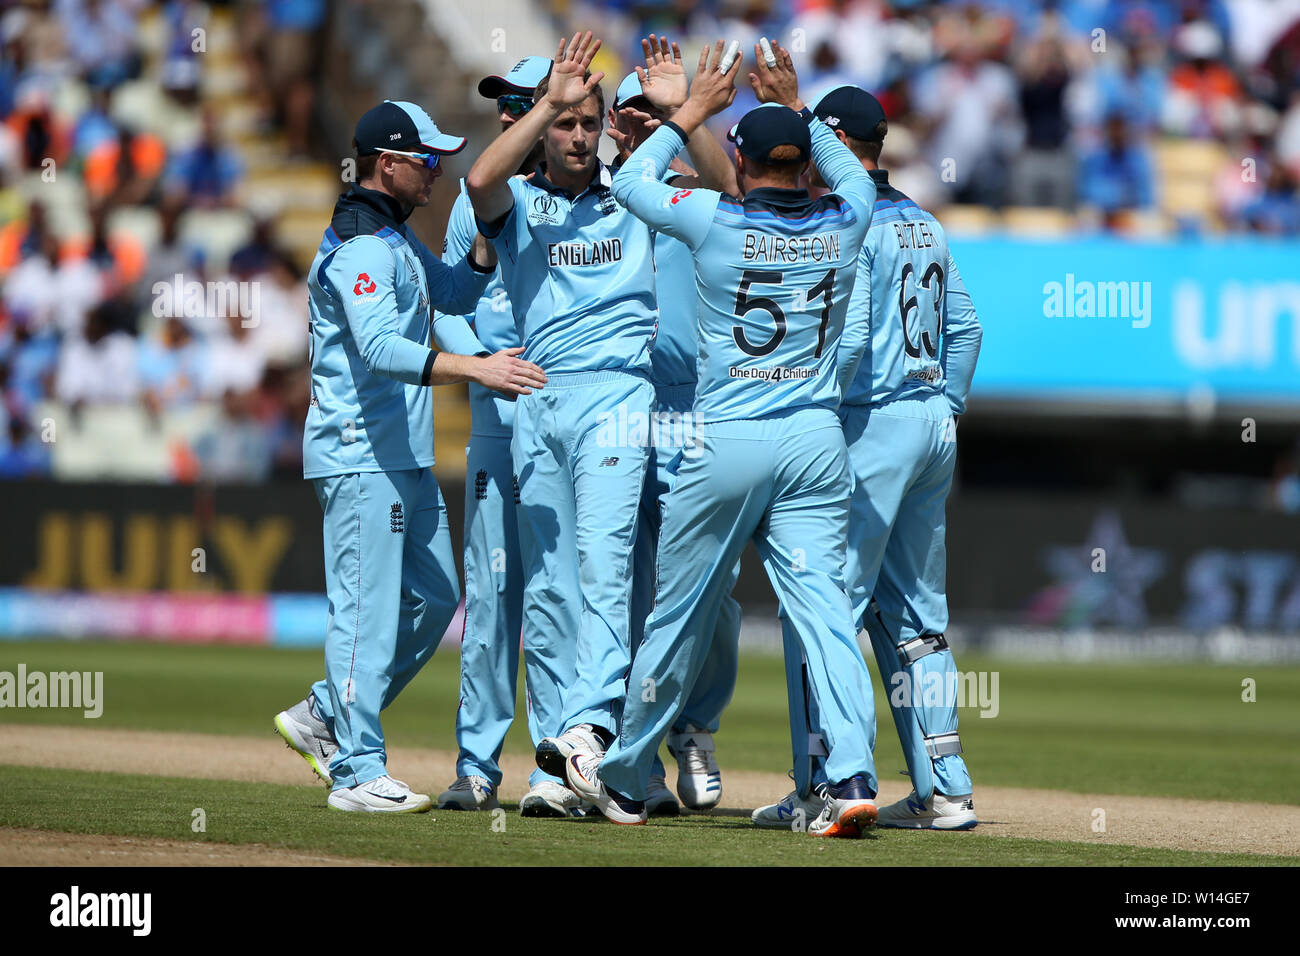 Edgbaston, Birmingham, UK. 30th June, 2019. ICC World Cup Cricket, England versus India; Chris Woakes and team mates celebrate as he takes the wicket of KL Rahul Credit: Action Plus Sports/Alamy Live News - Stock Image